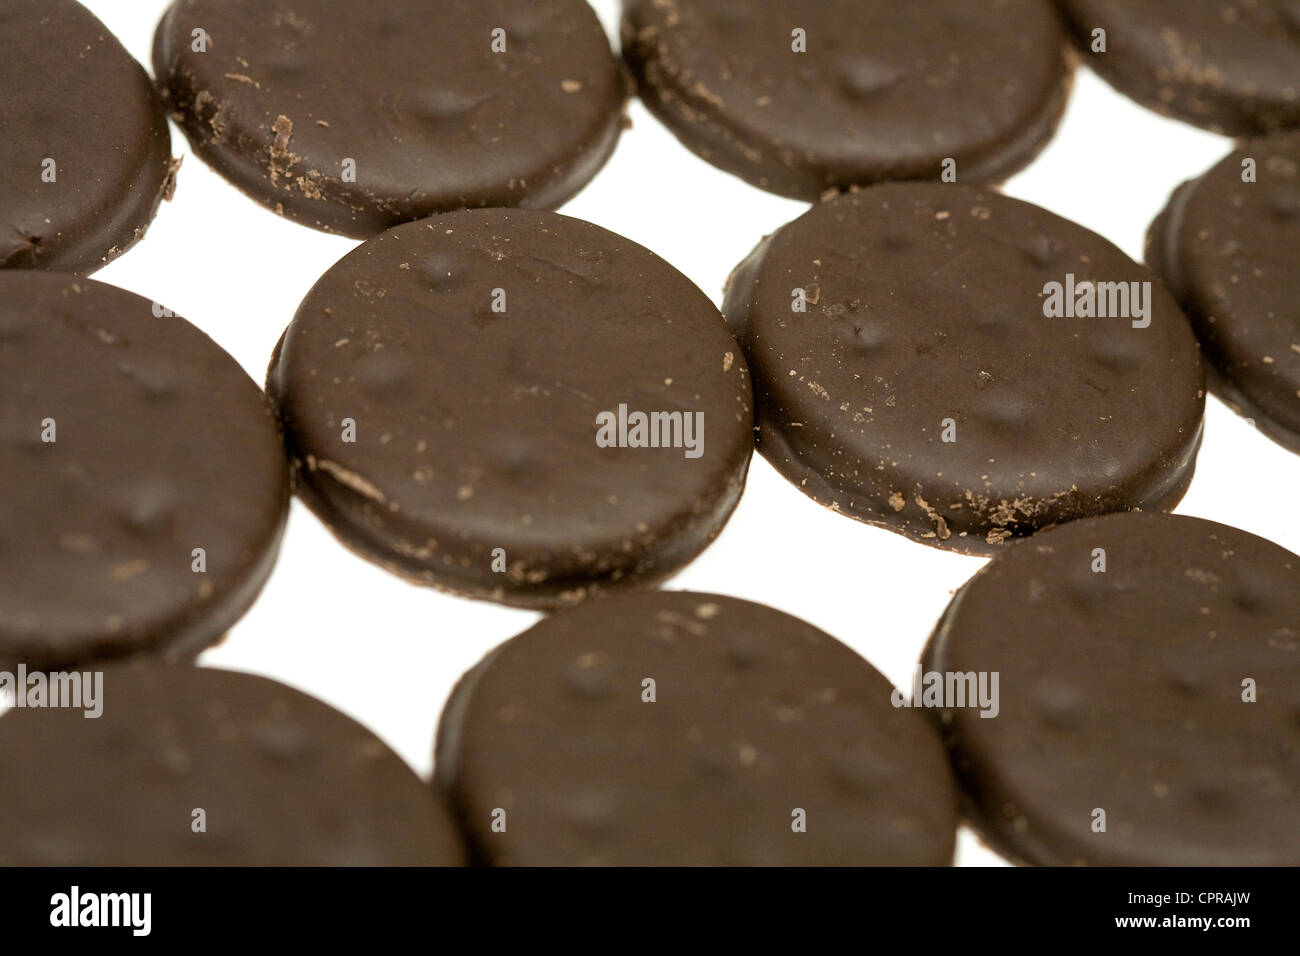 A box of Thin Mints Girl Scout cookies.  - Stock Image